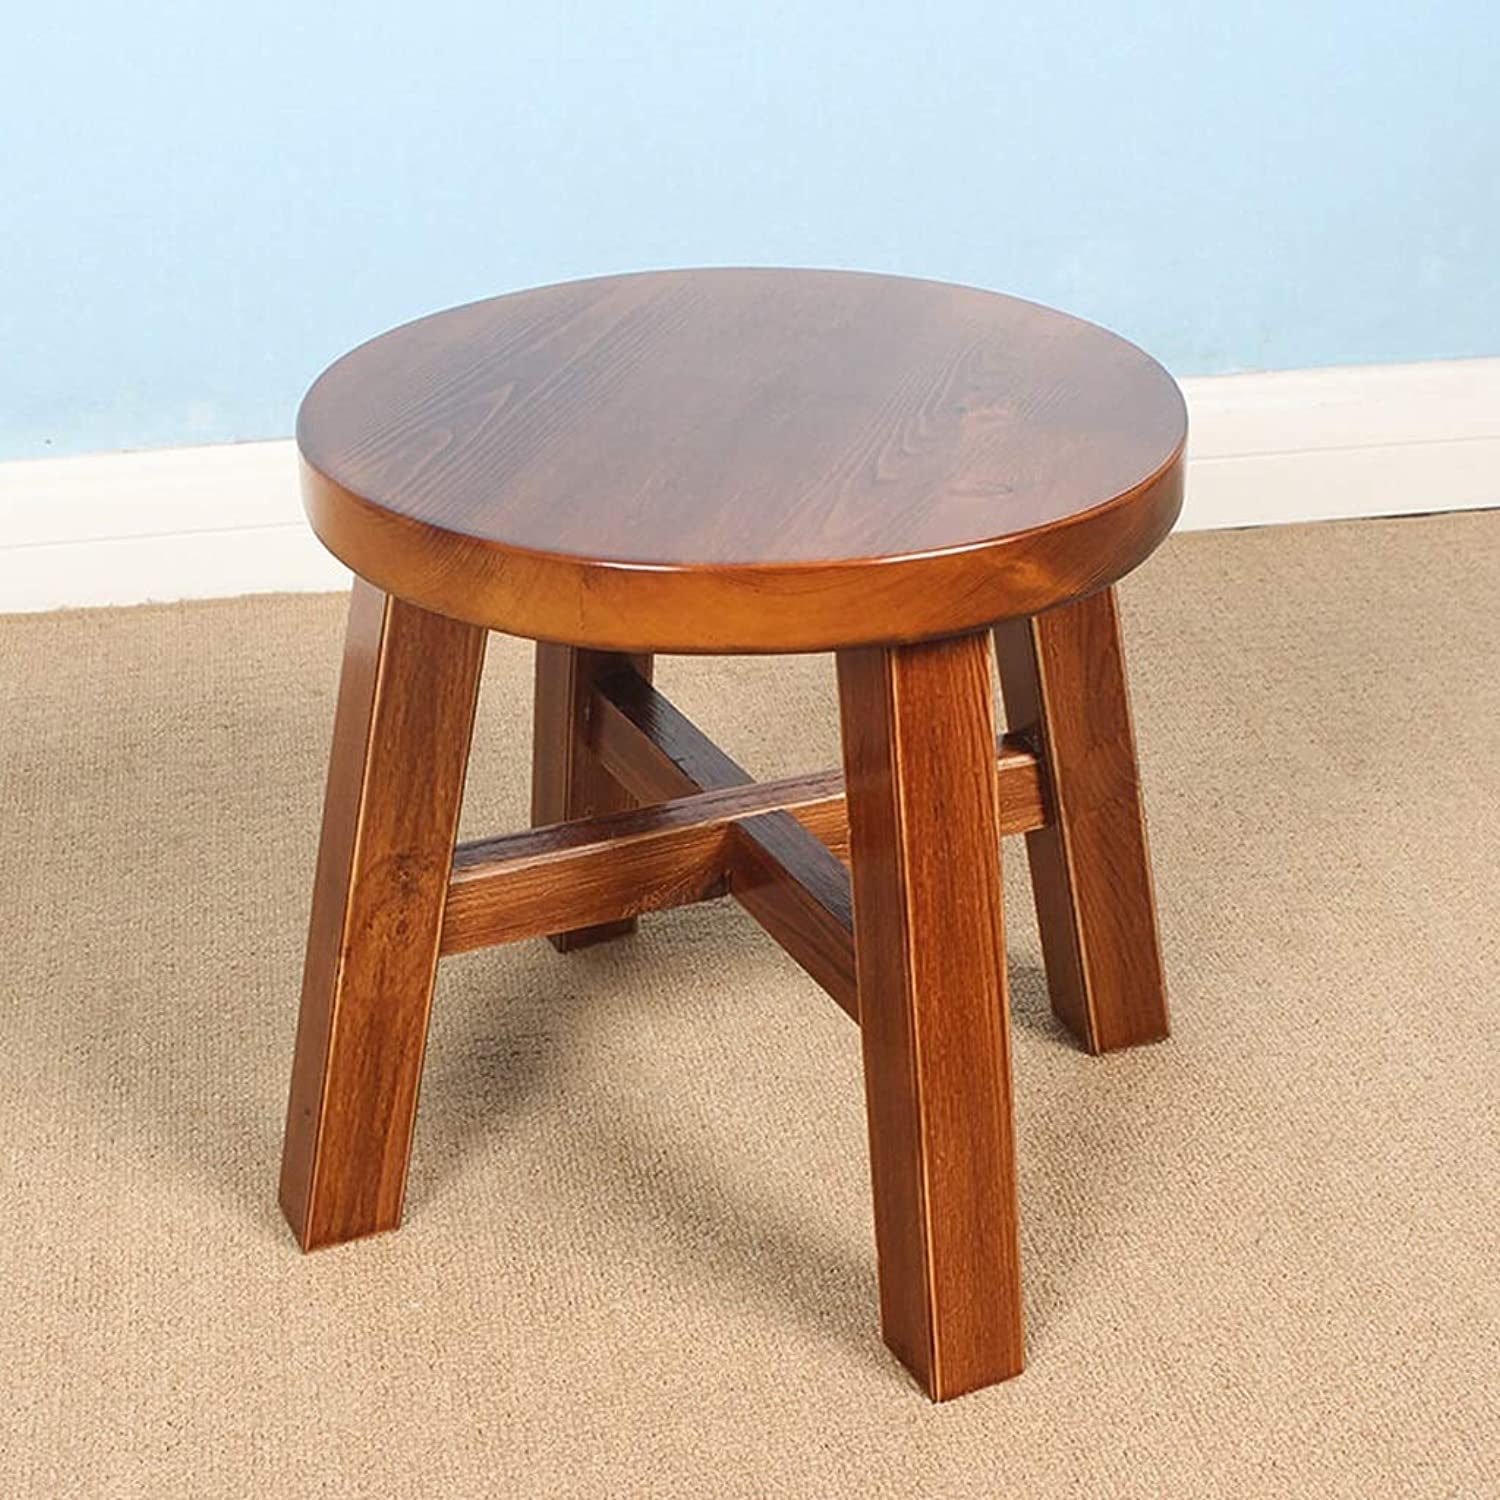 Lsxlsd Living Room Home Stool Creative Solid Wood Adult Small Bench Fashion Simple Modern Stool